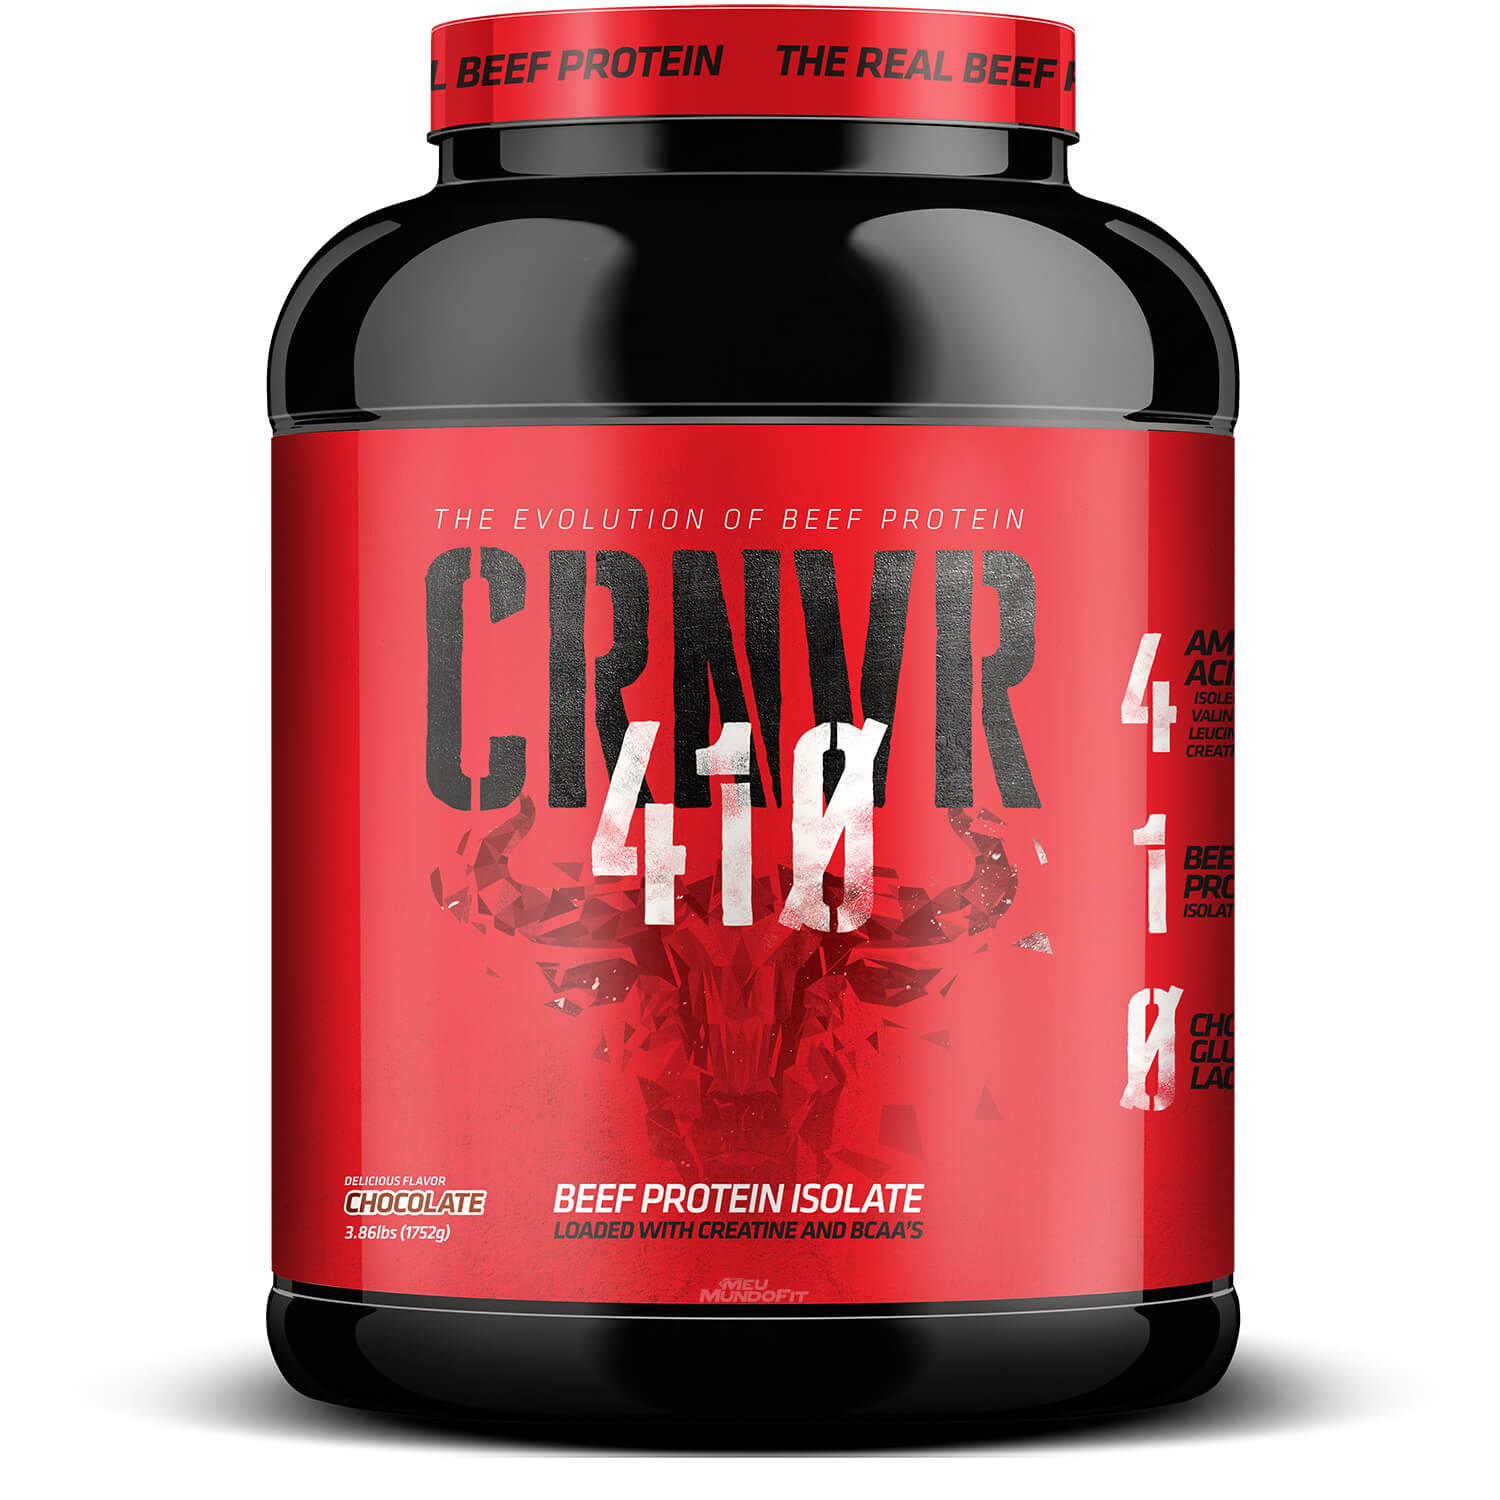 CRNVR BEEF PROTEIN (1752Kg) CHOCOLATE